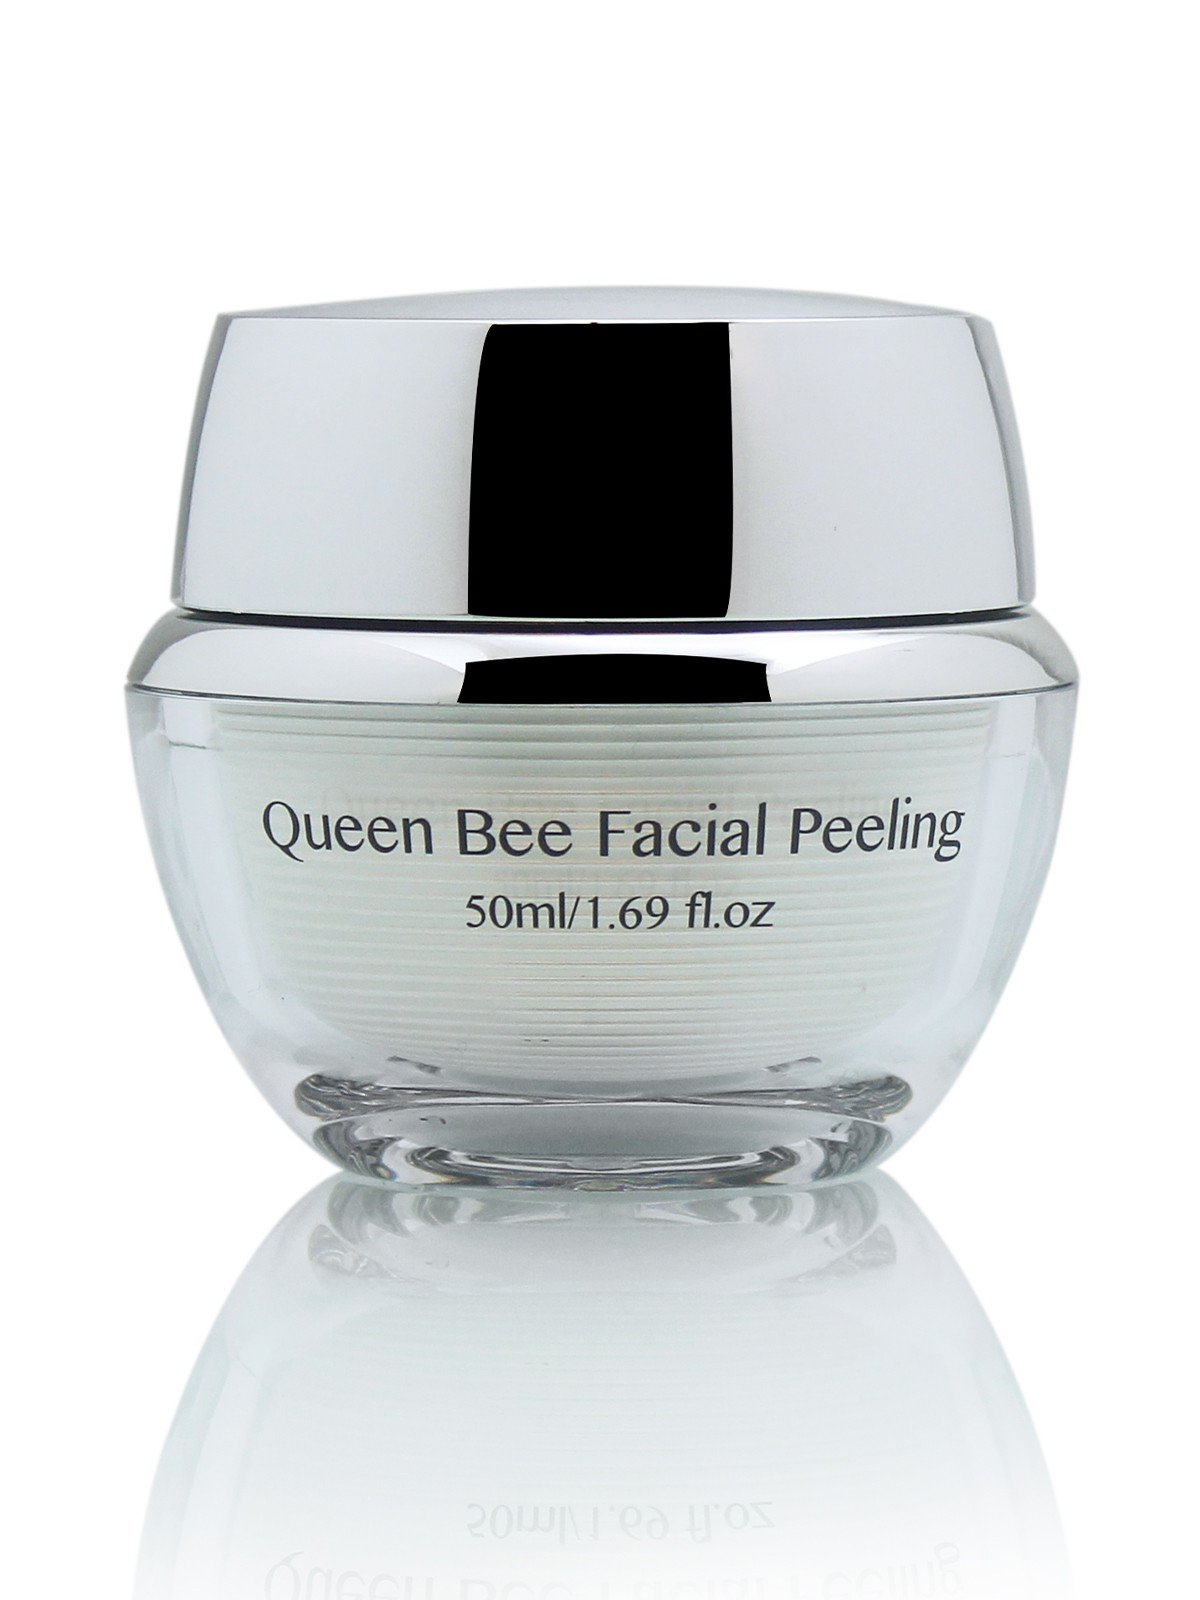 Queen Bee Facial Peeling